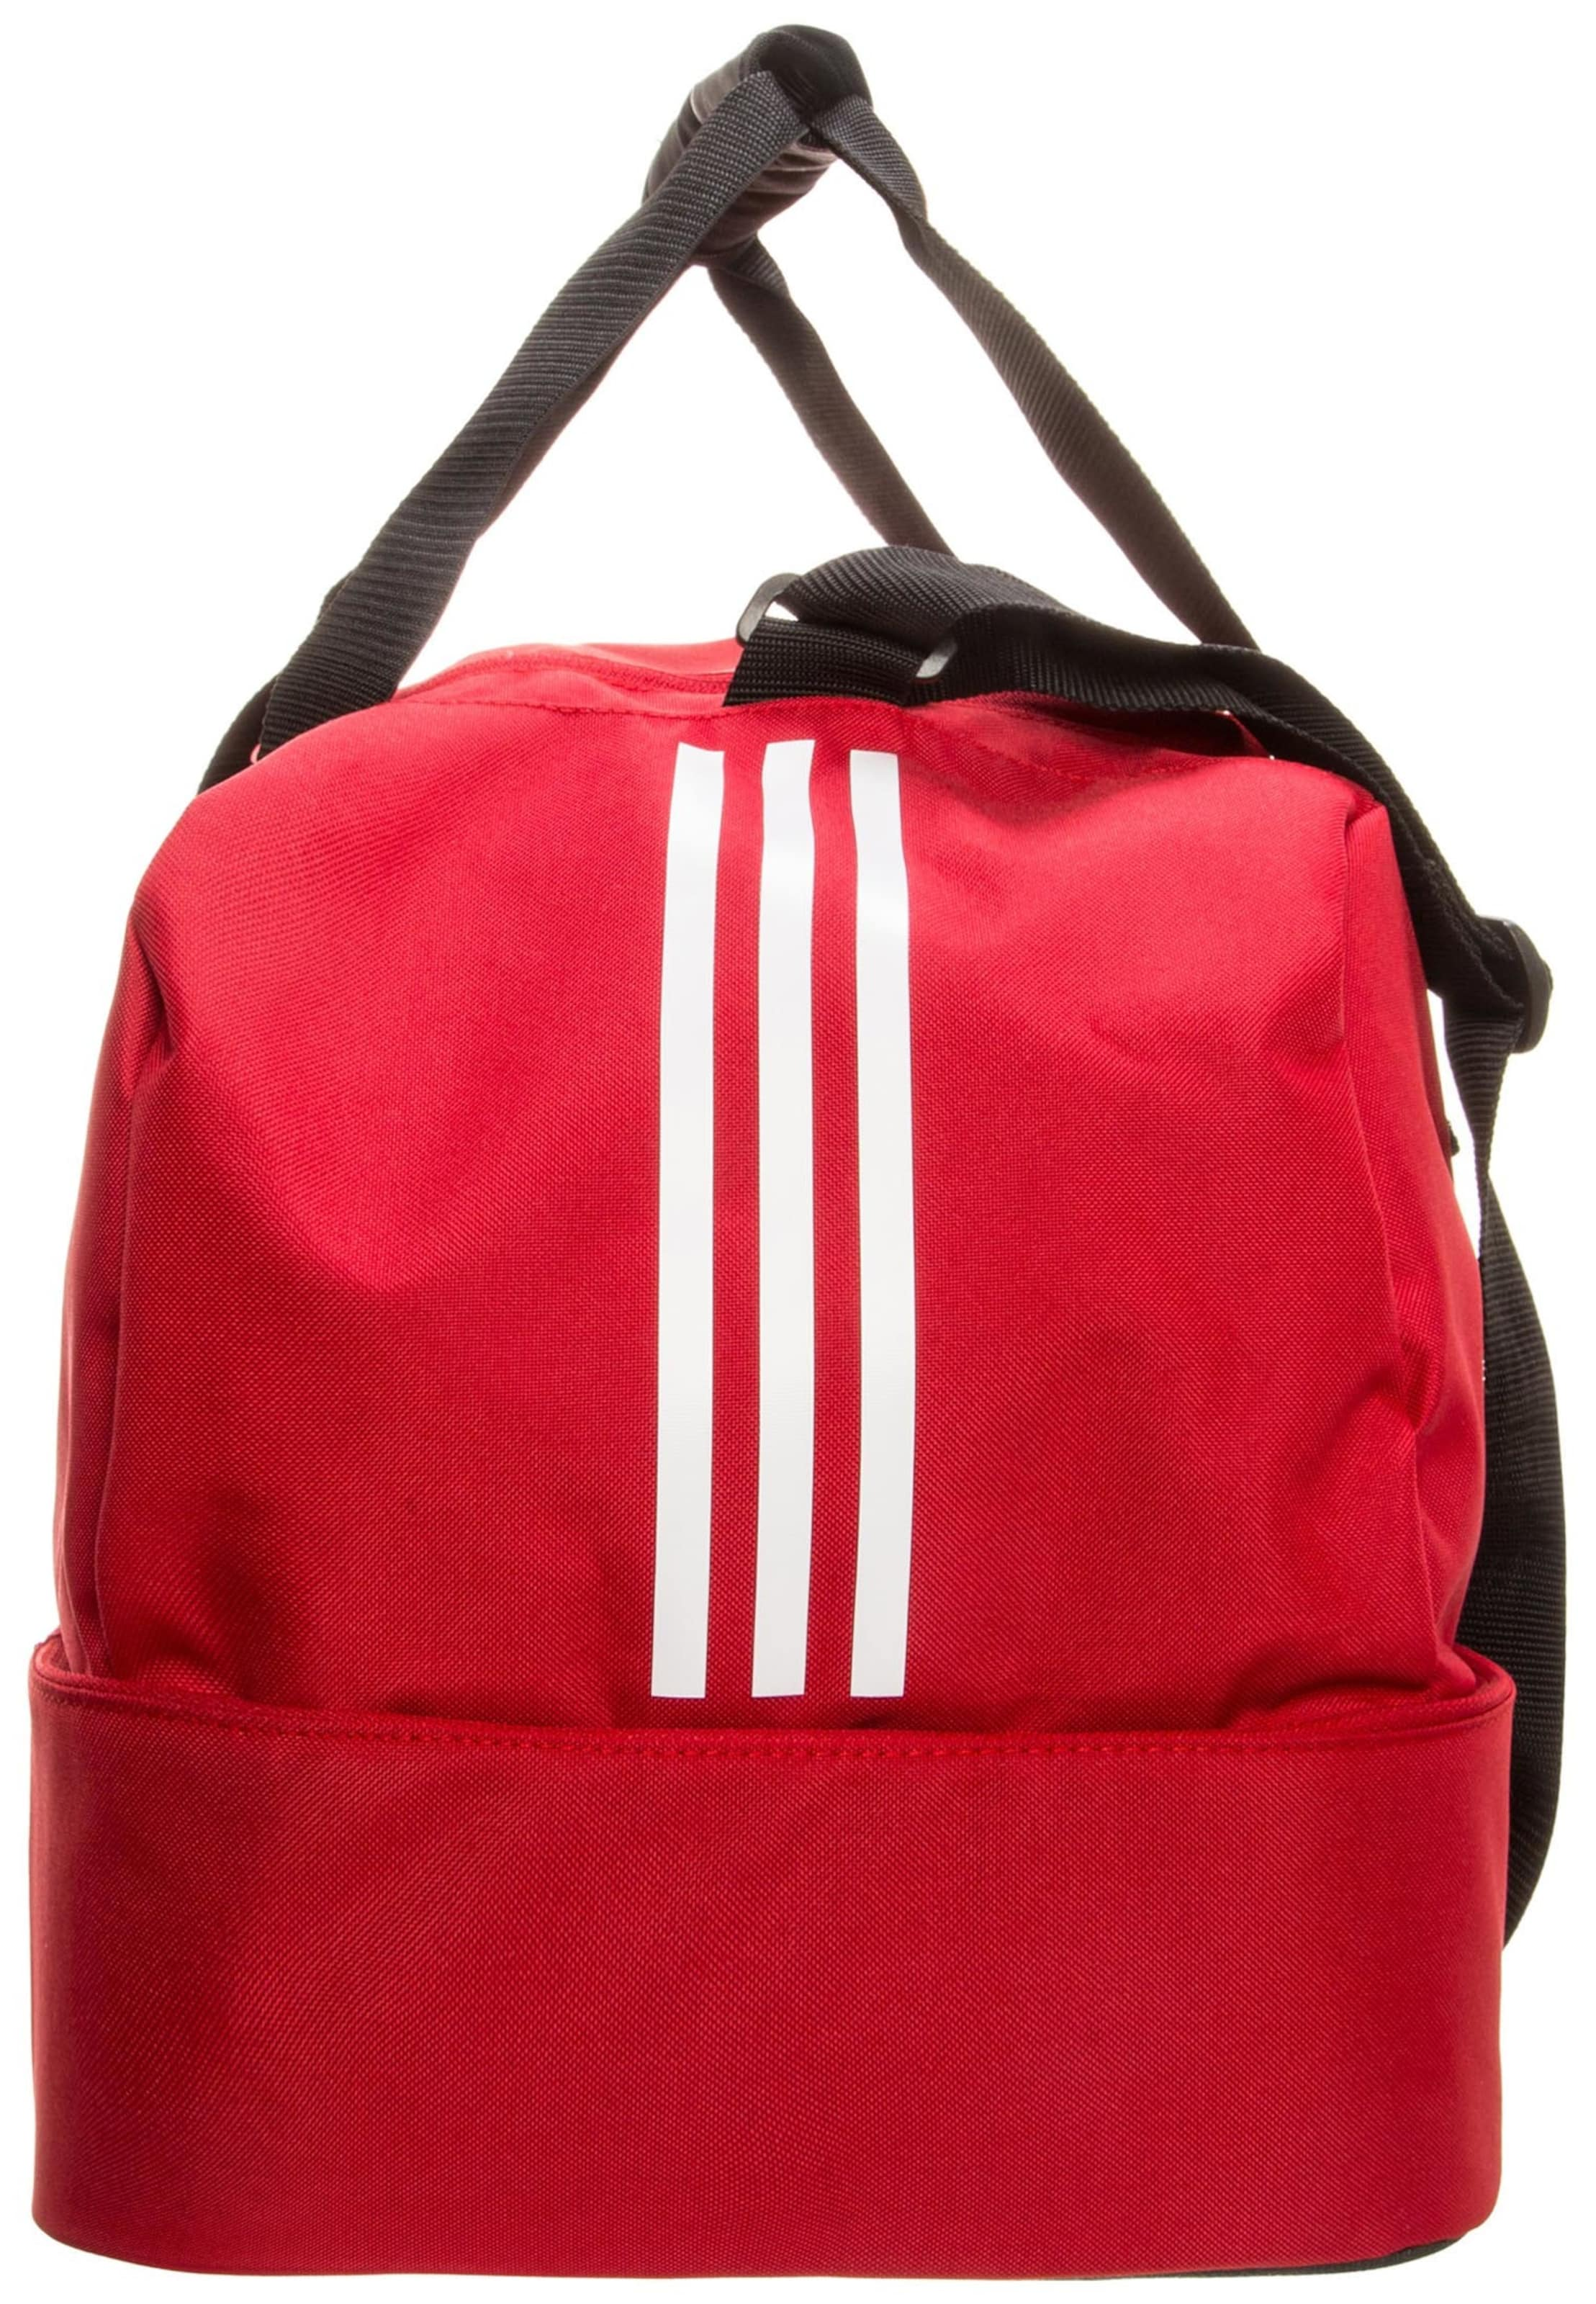 En RougeNoir 'tiro Adidas Blanc Sac Sport Performance De Compartment' Bottom A45Rj3qL